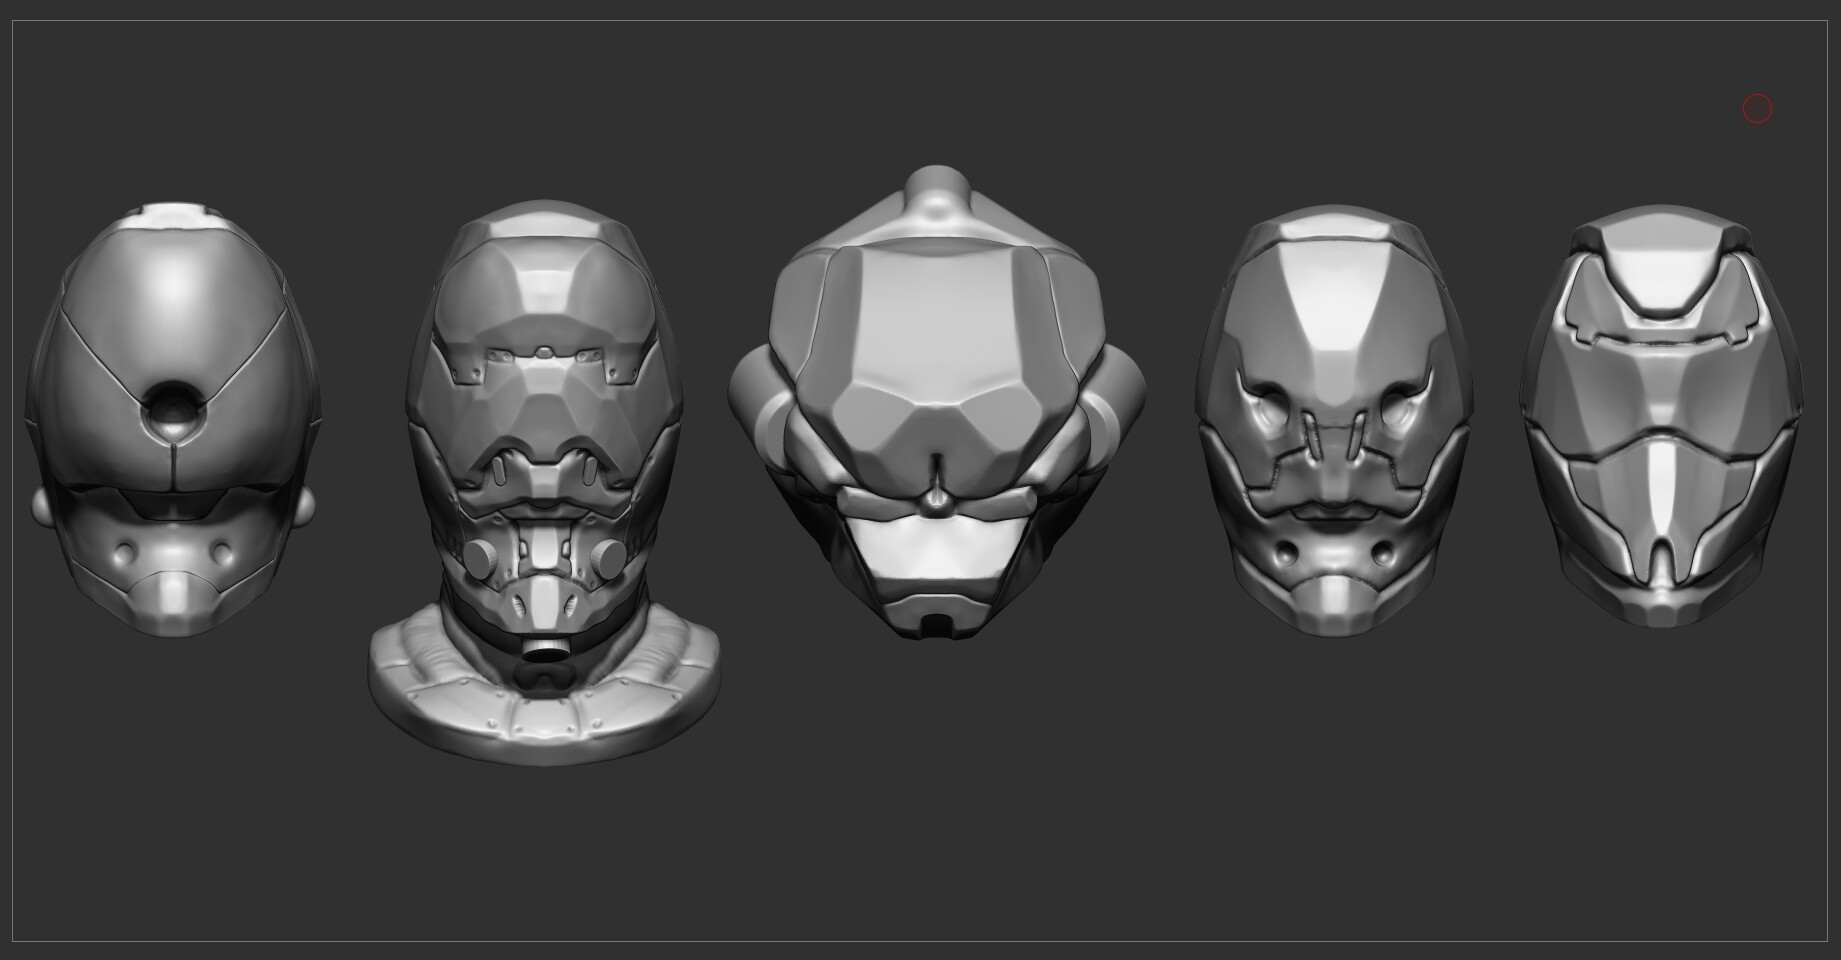 Several concepts of helmets made in Zbrush